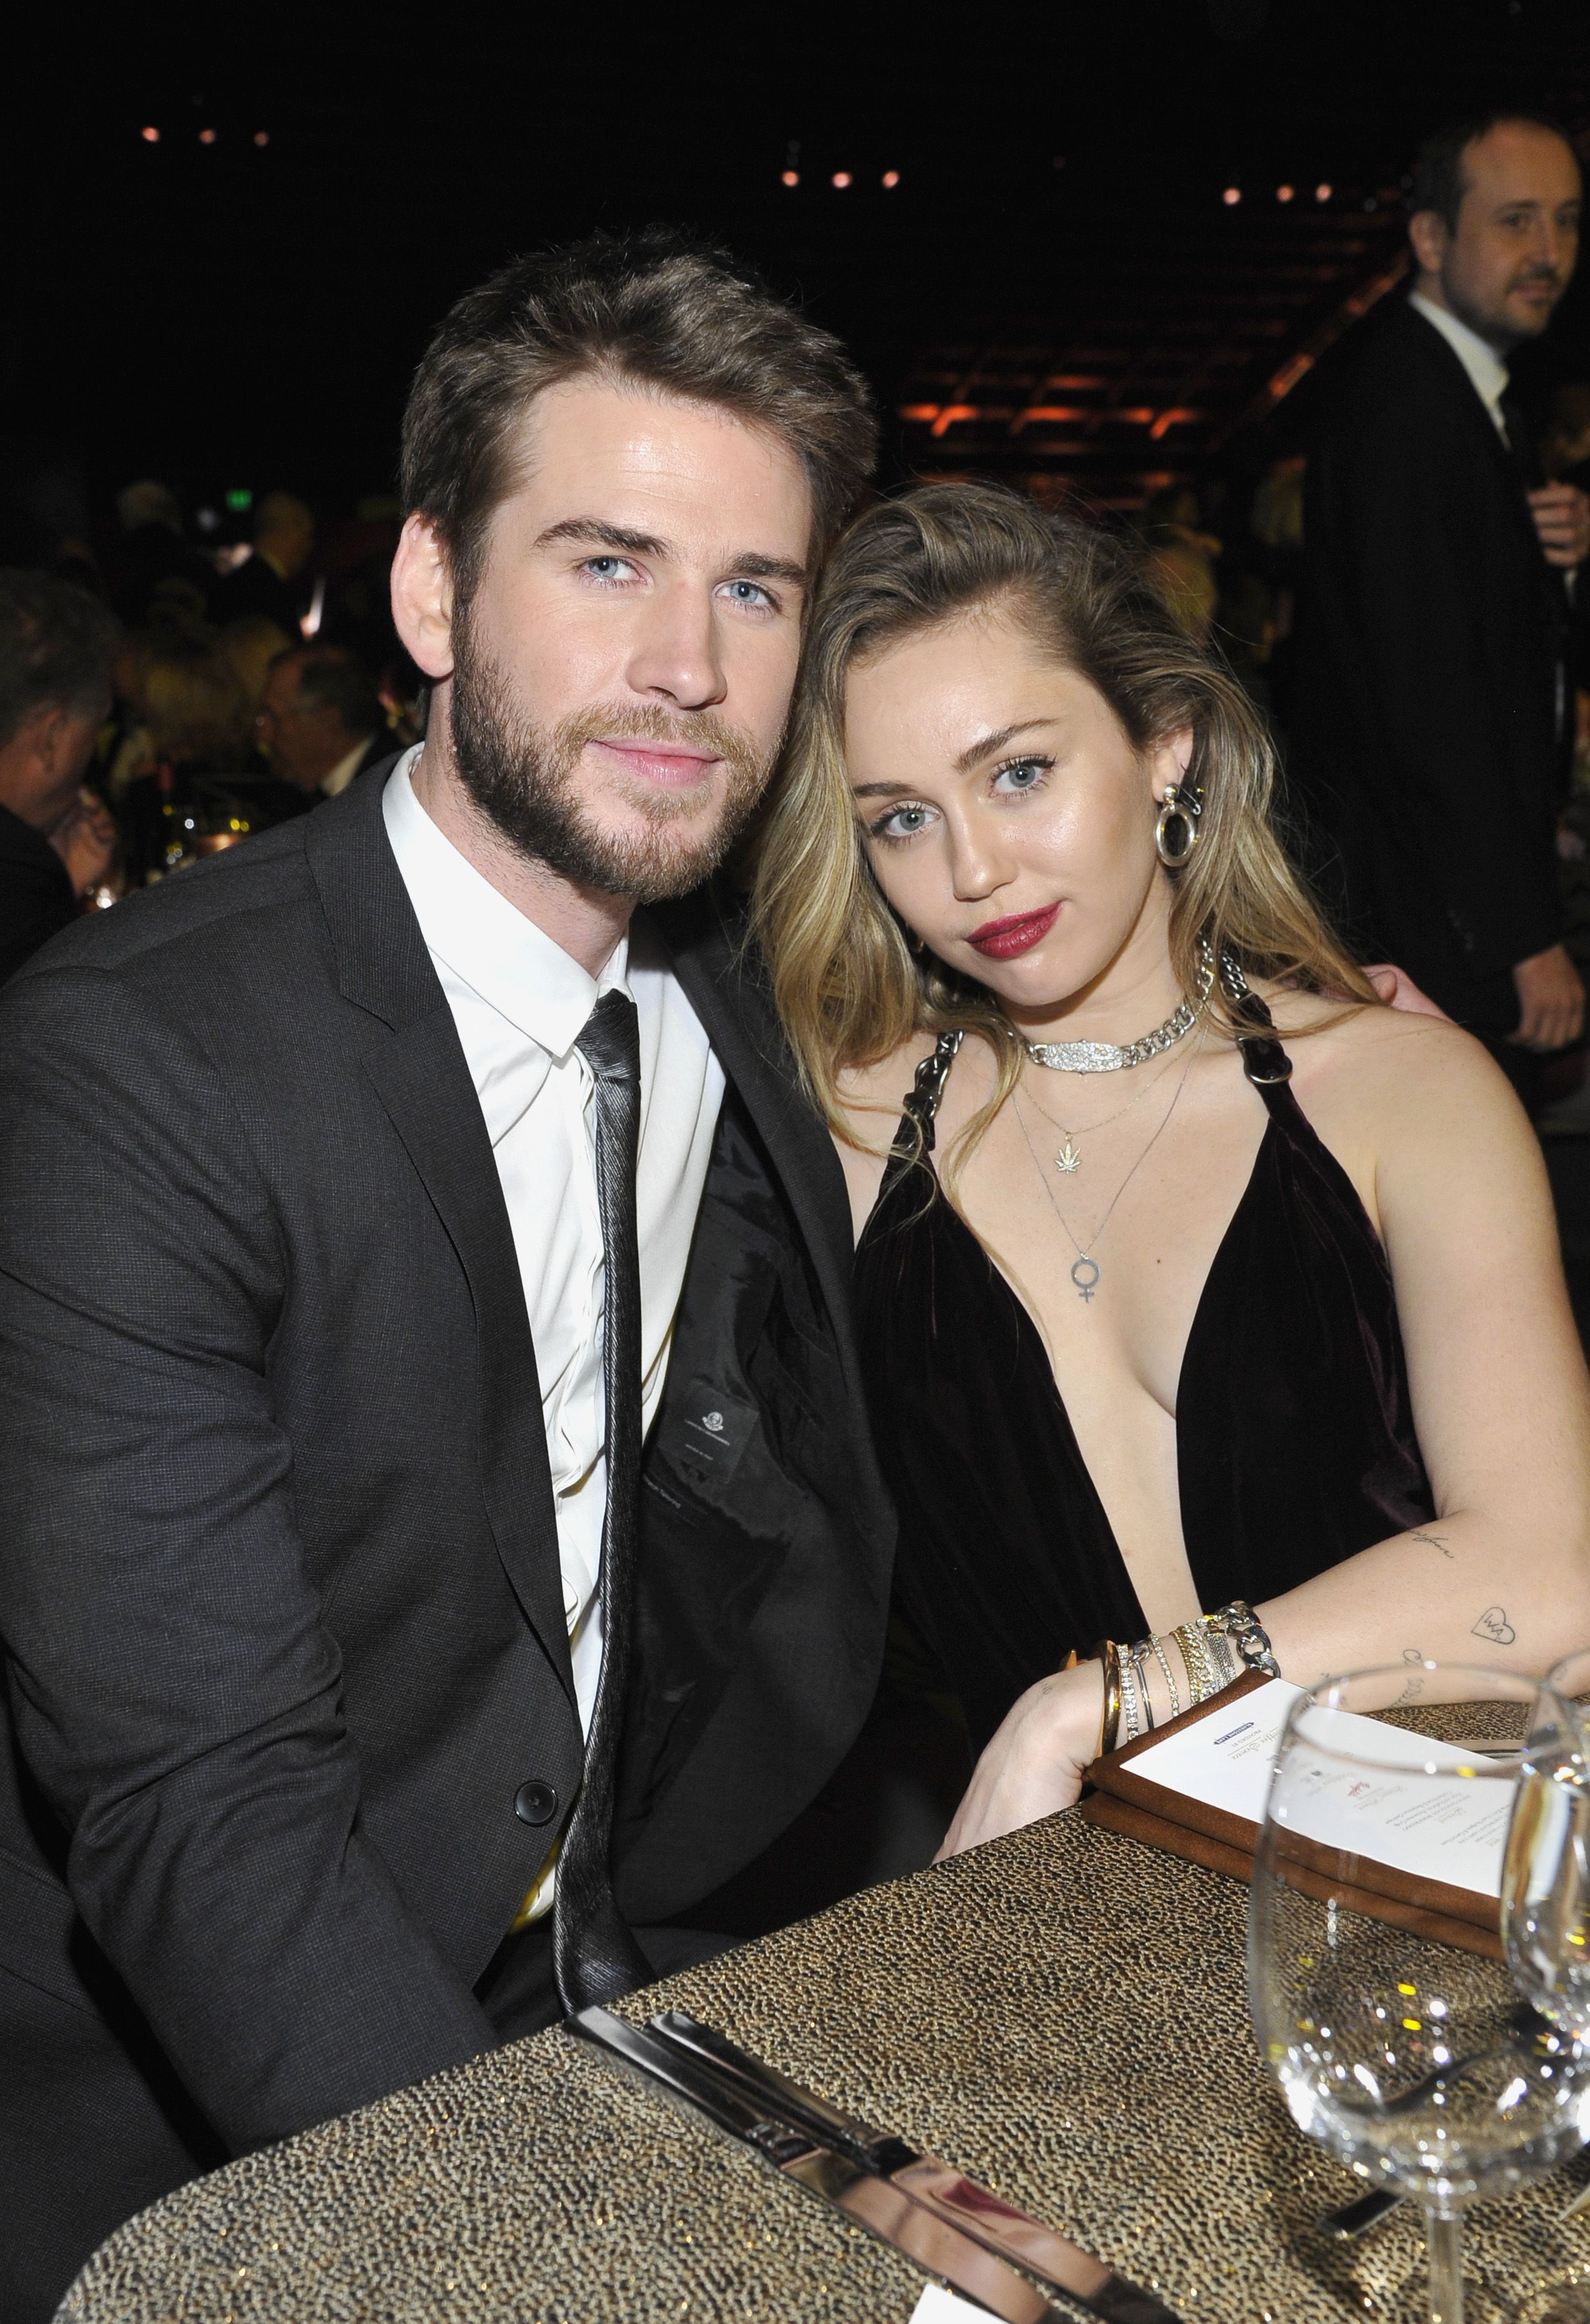 Miley cyrus fiance name